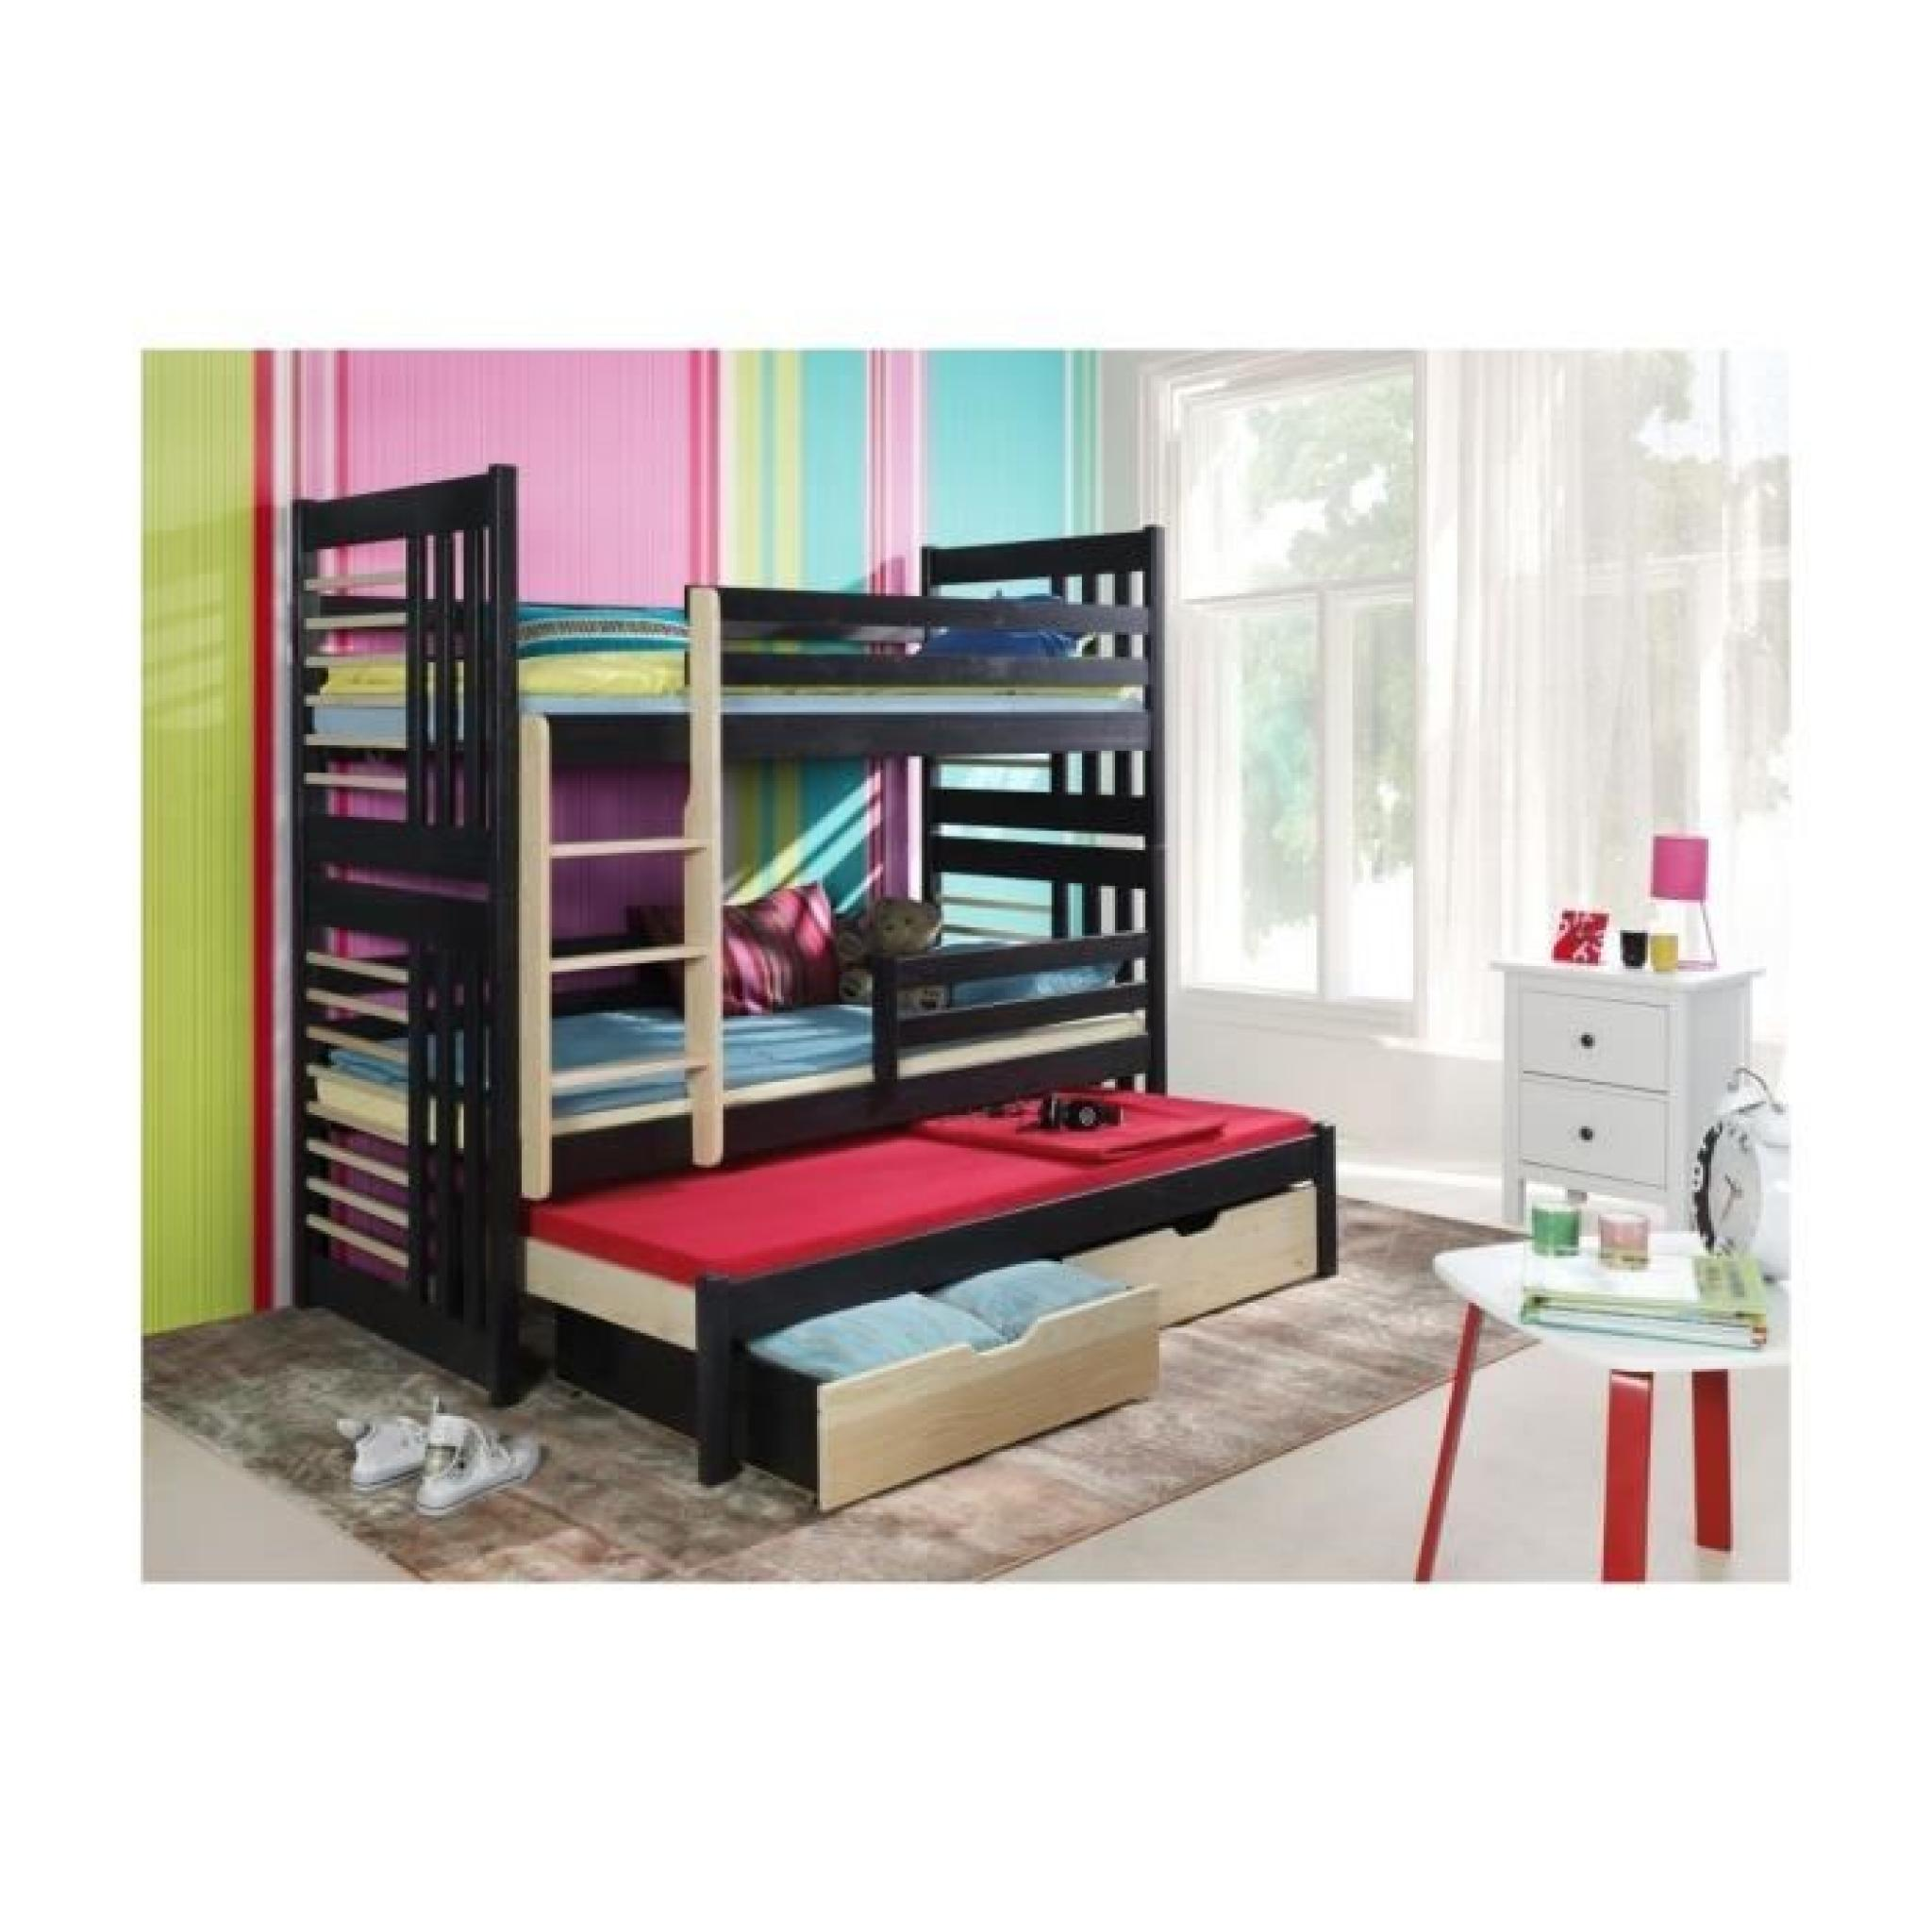 lit enfant superpos roland iii avec lit gigogne 3 couchages couleur marketing gris. Black Bedroom Furniture Sets. Home Design Ideas